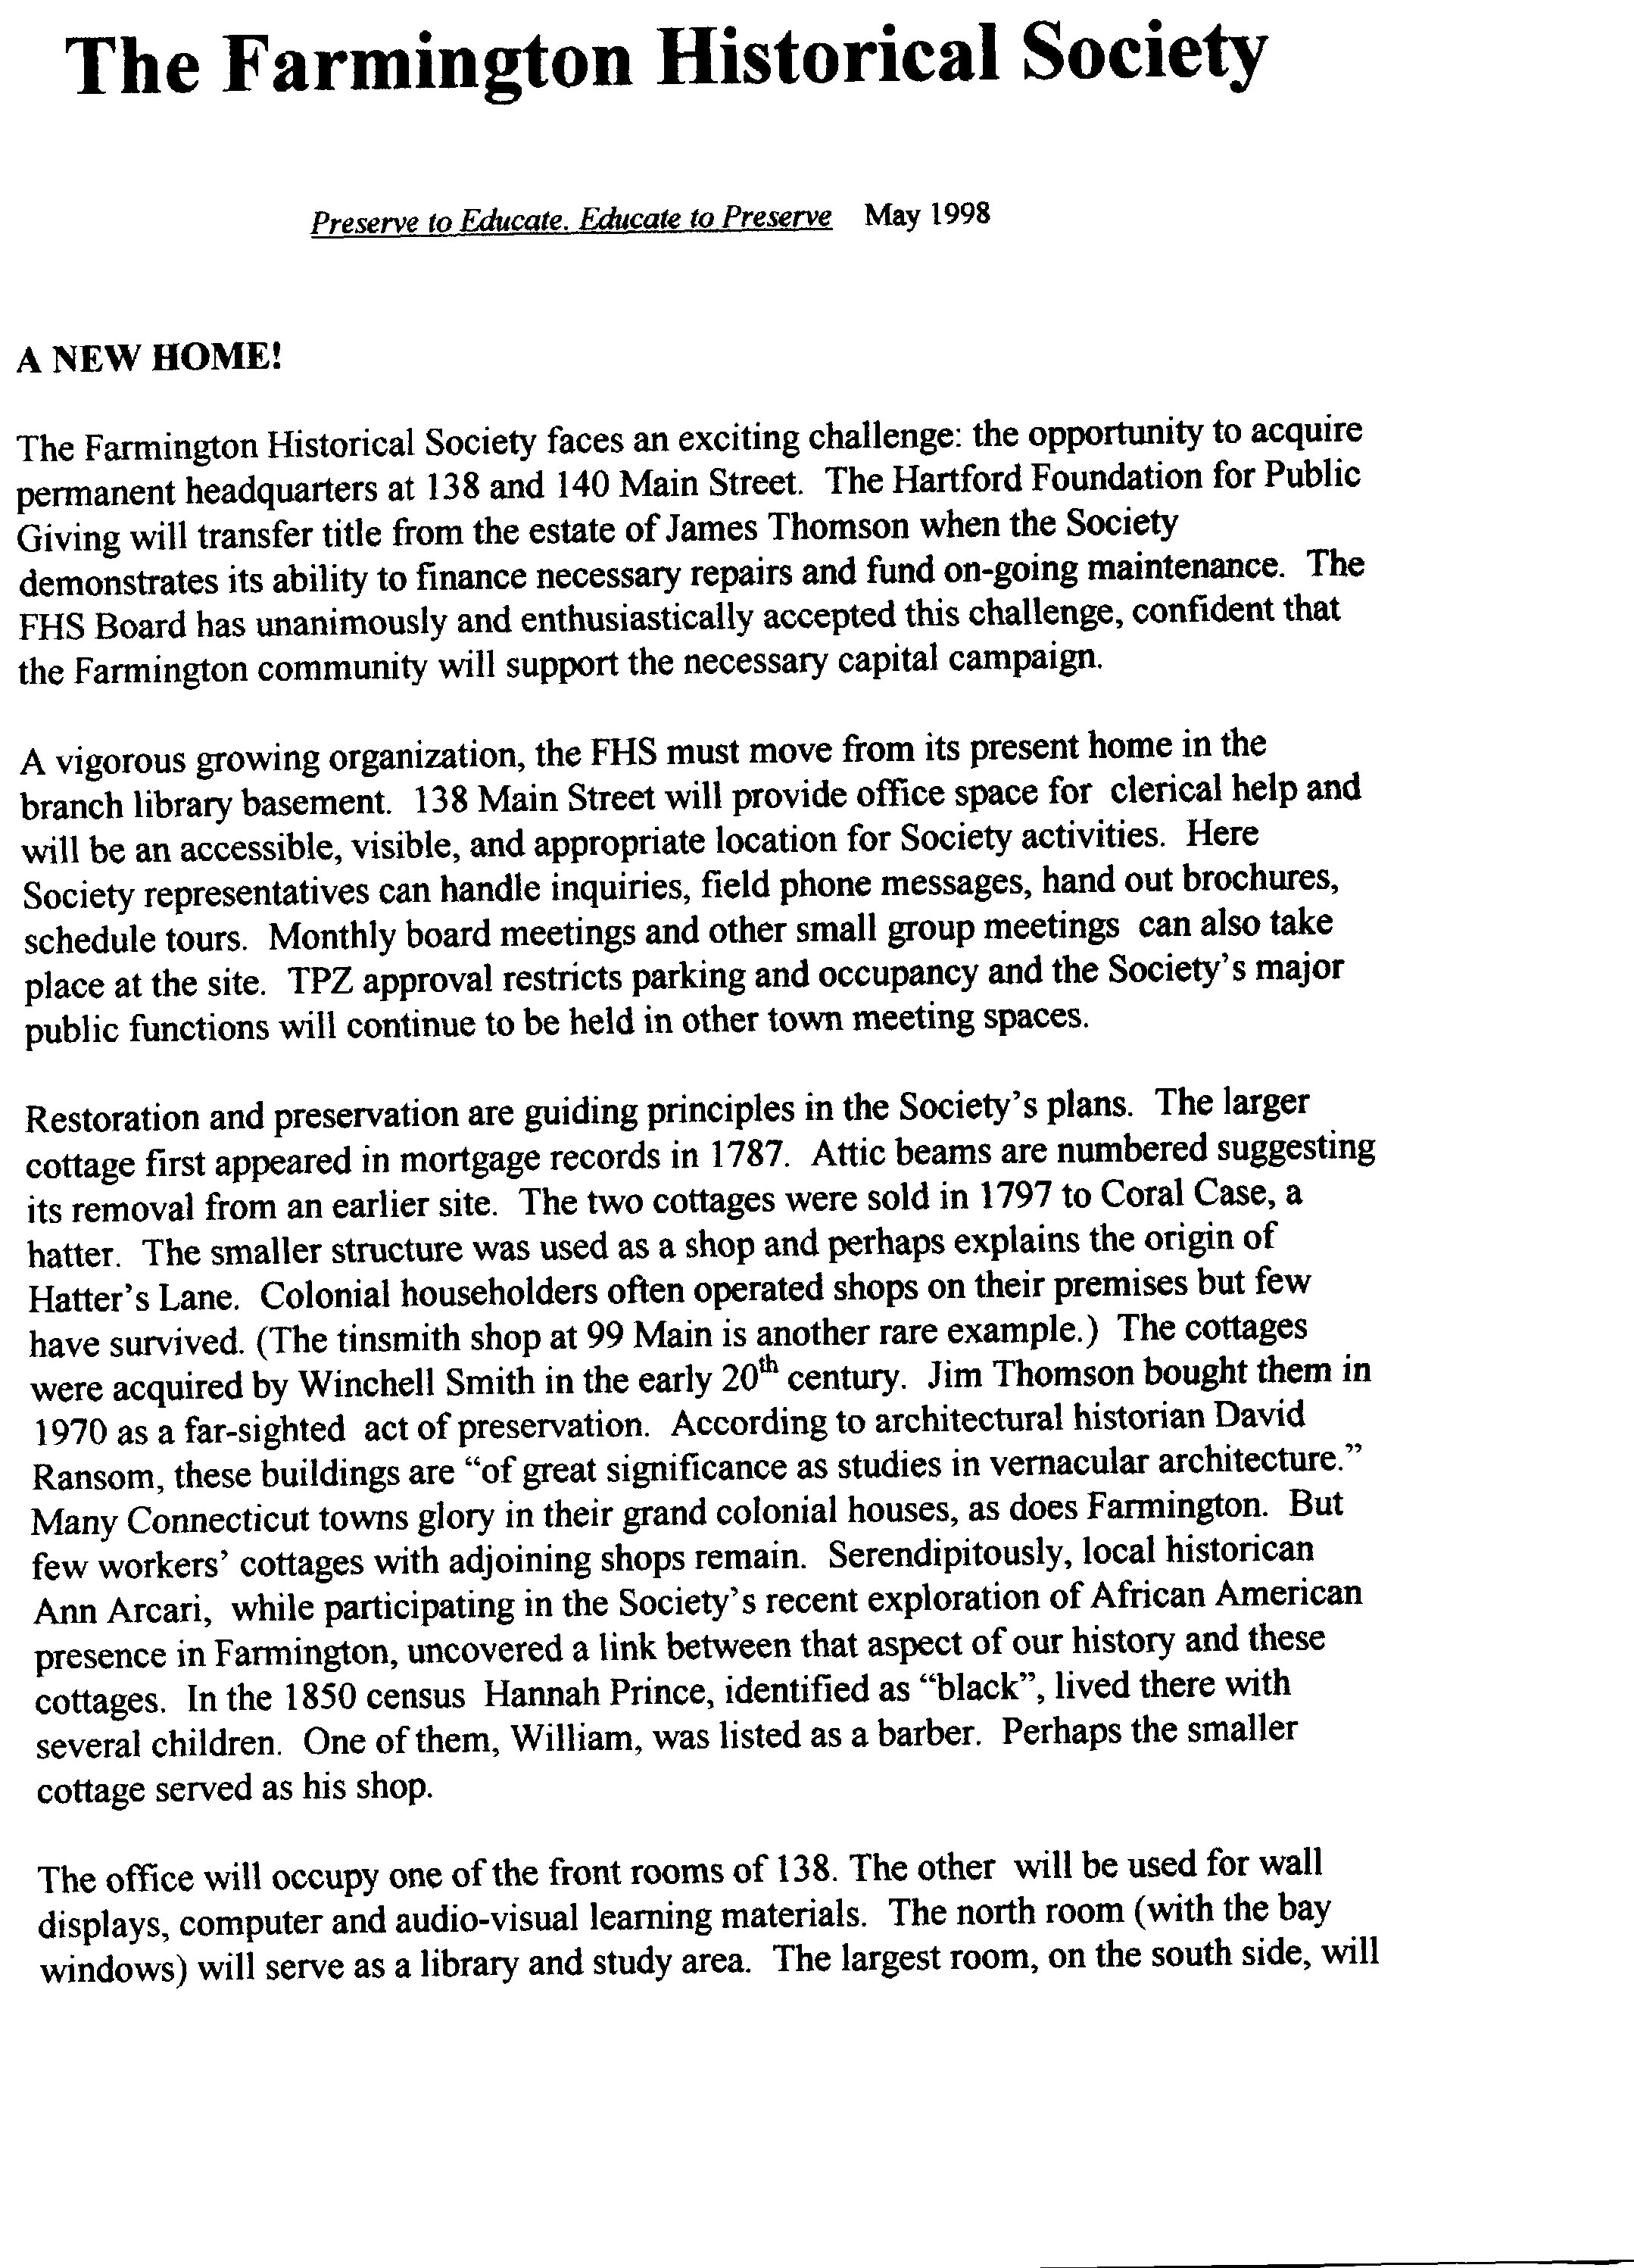 http://fhs-ct.org/1998/05/10/may-1998-newsletter-2/